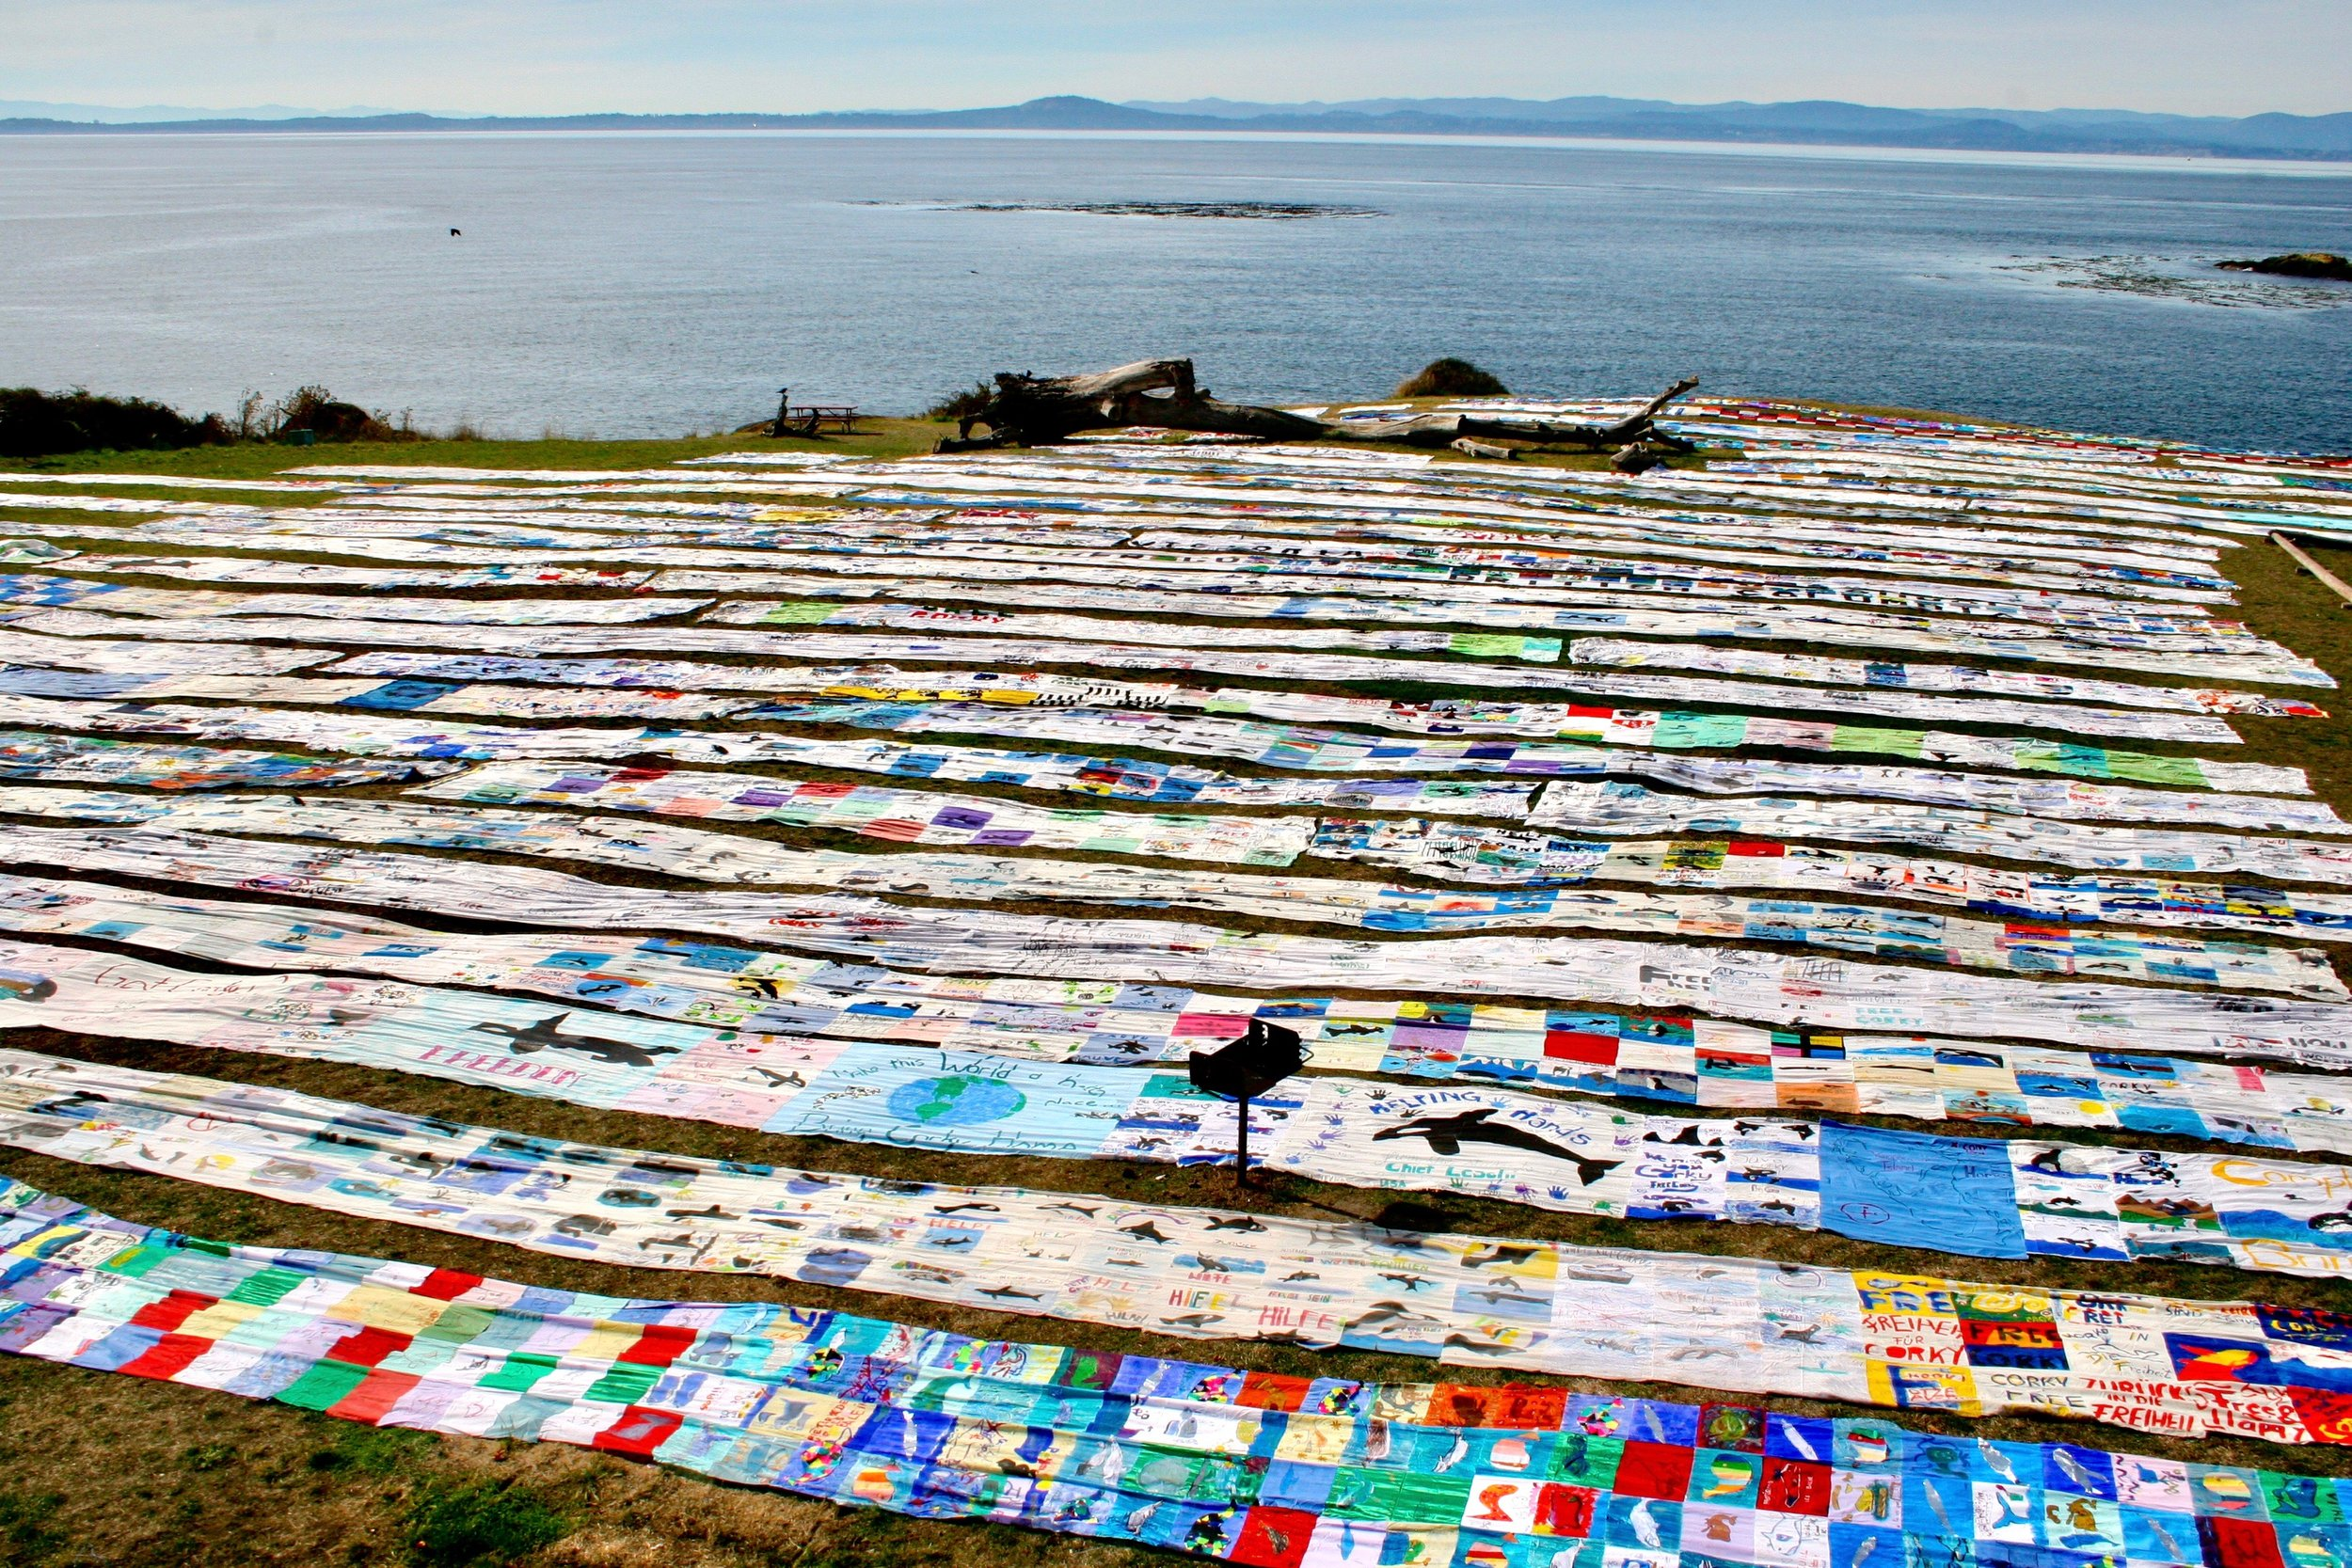 The entire Corky Freedom Banner laid out at San Juan County Park, San Juan Island, Washington State.